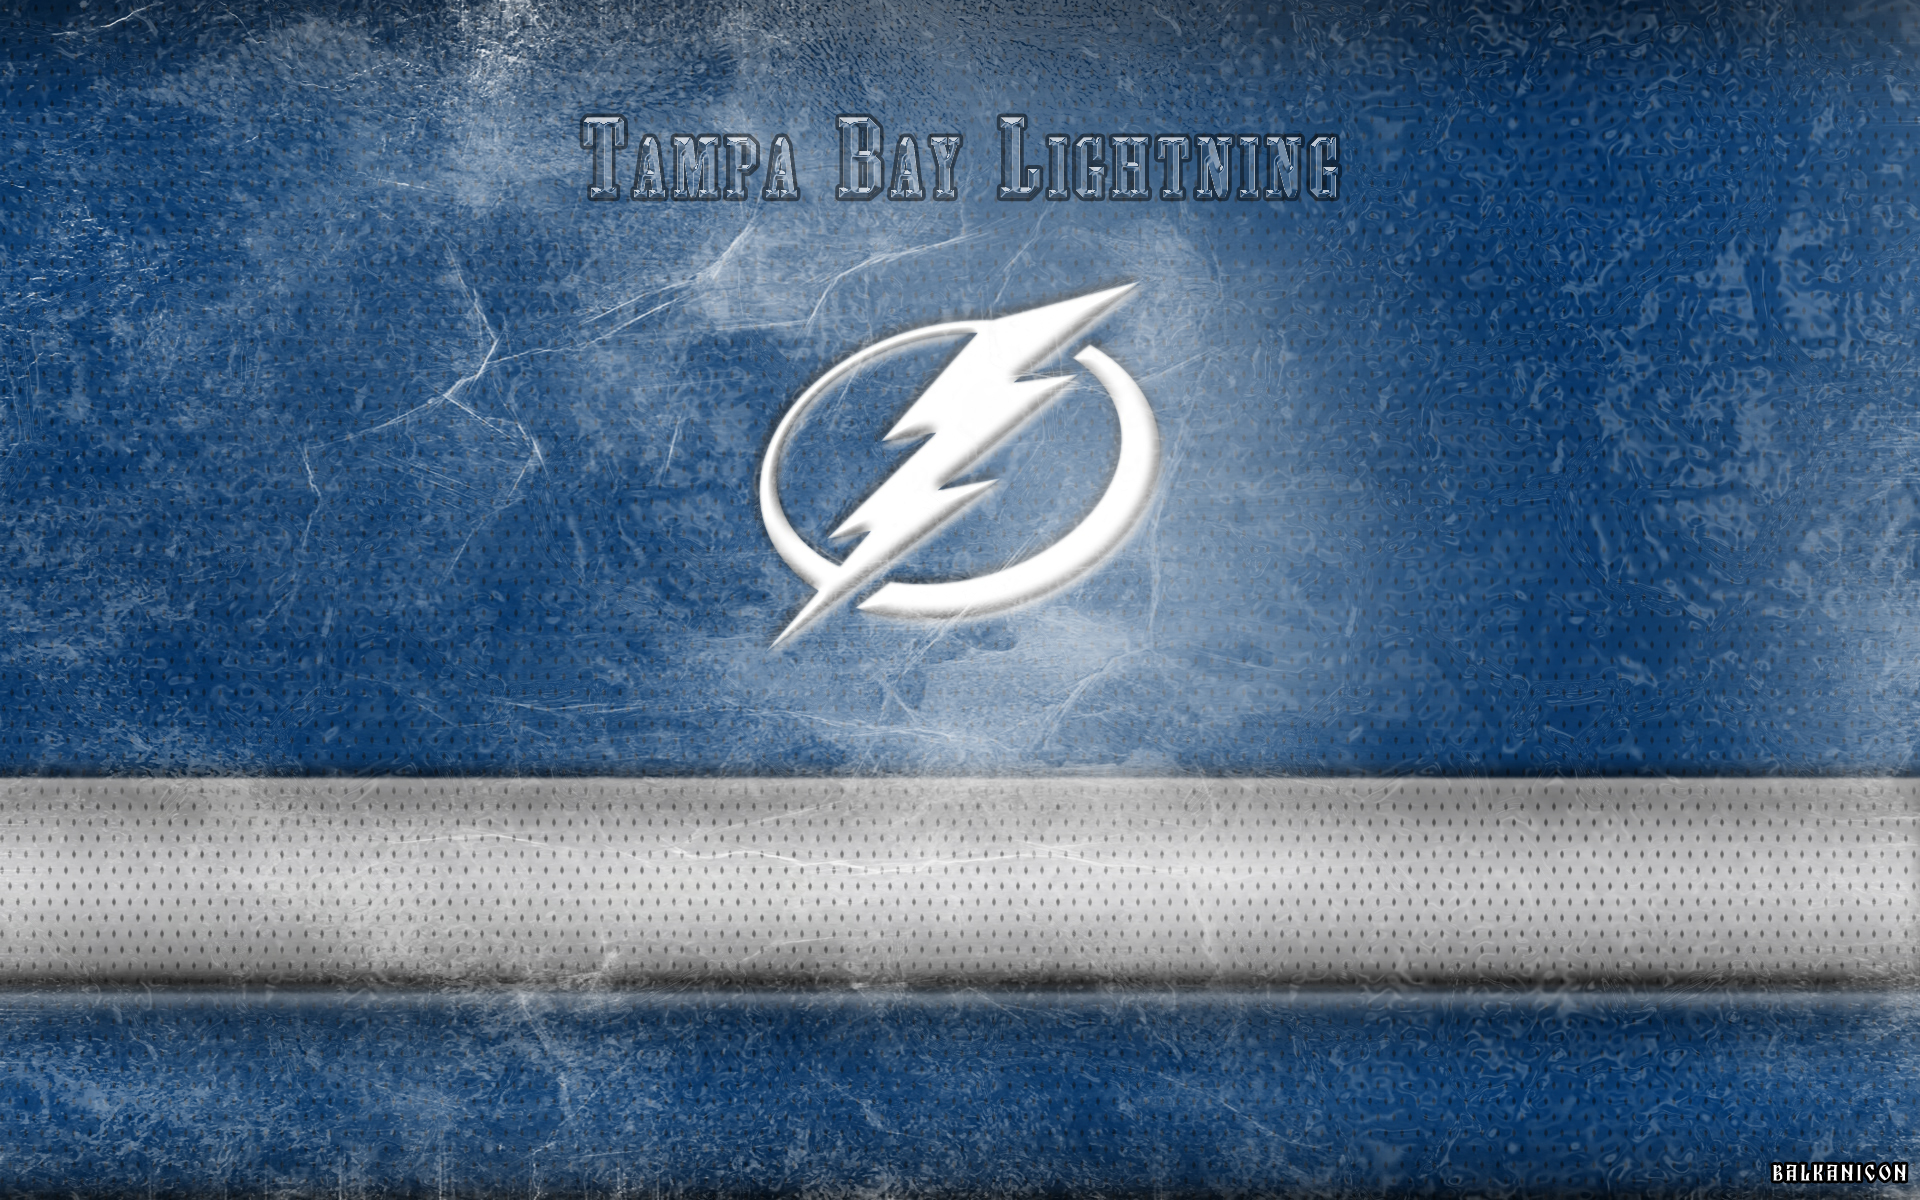 Tampa Bay Lightning wallpaper by Balkanicon 1920x1200